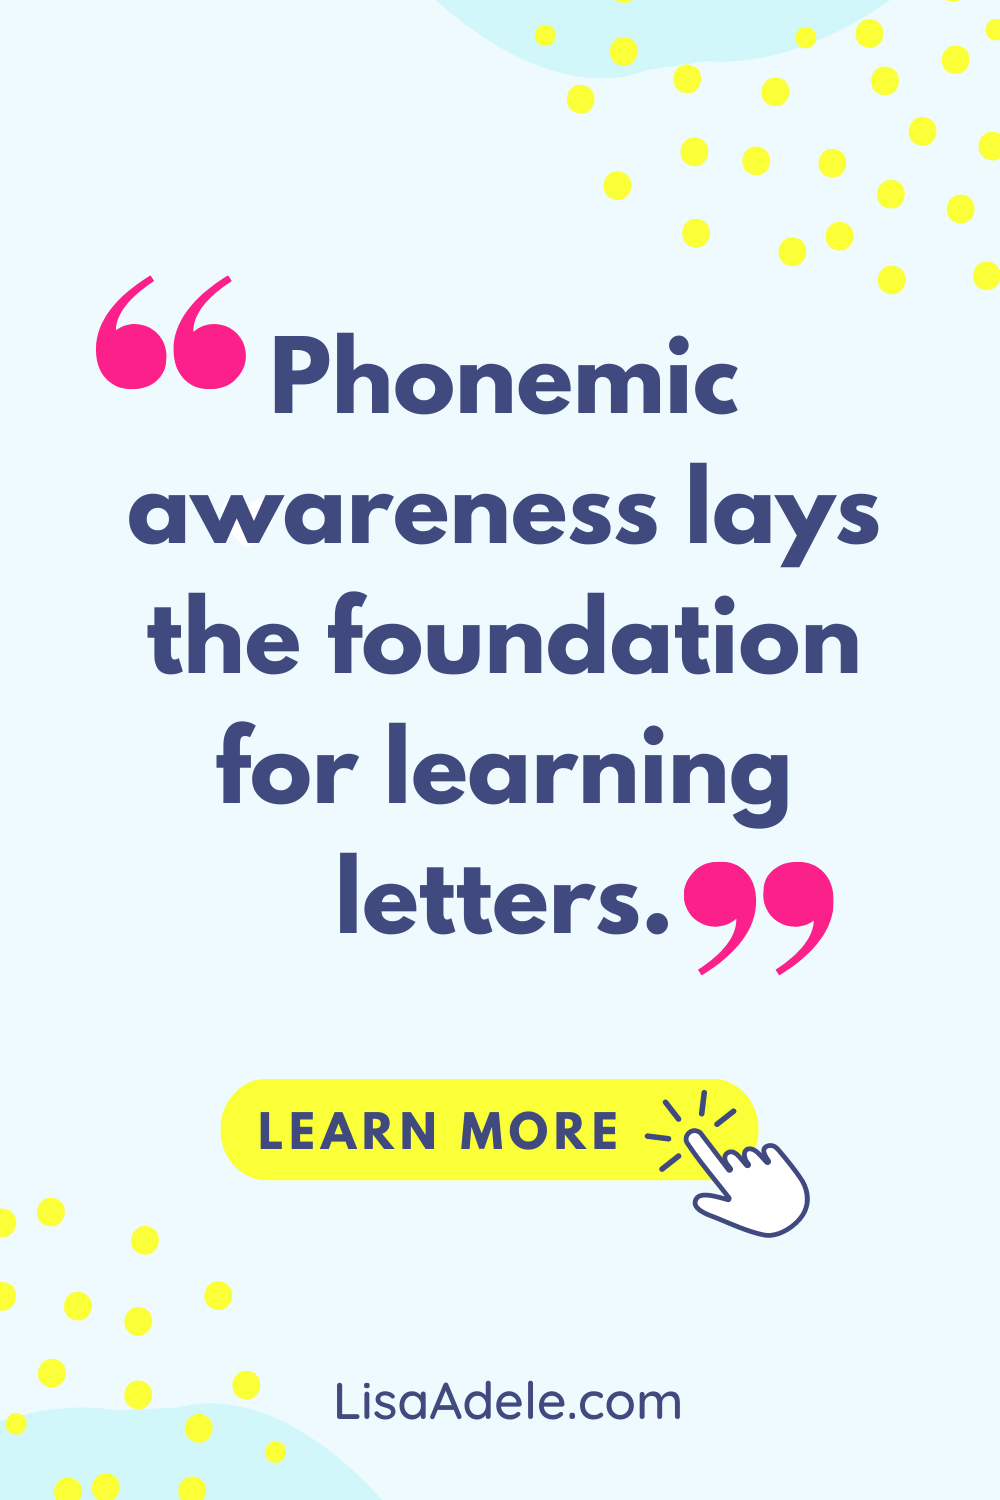 Phonemic awareness lays the foundation for learning letter sounds.